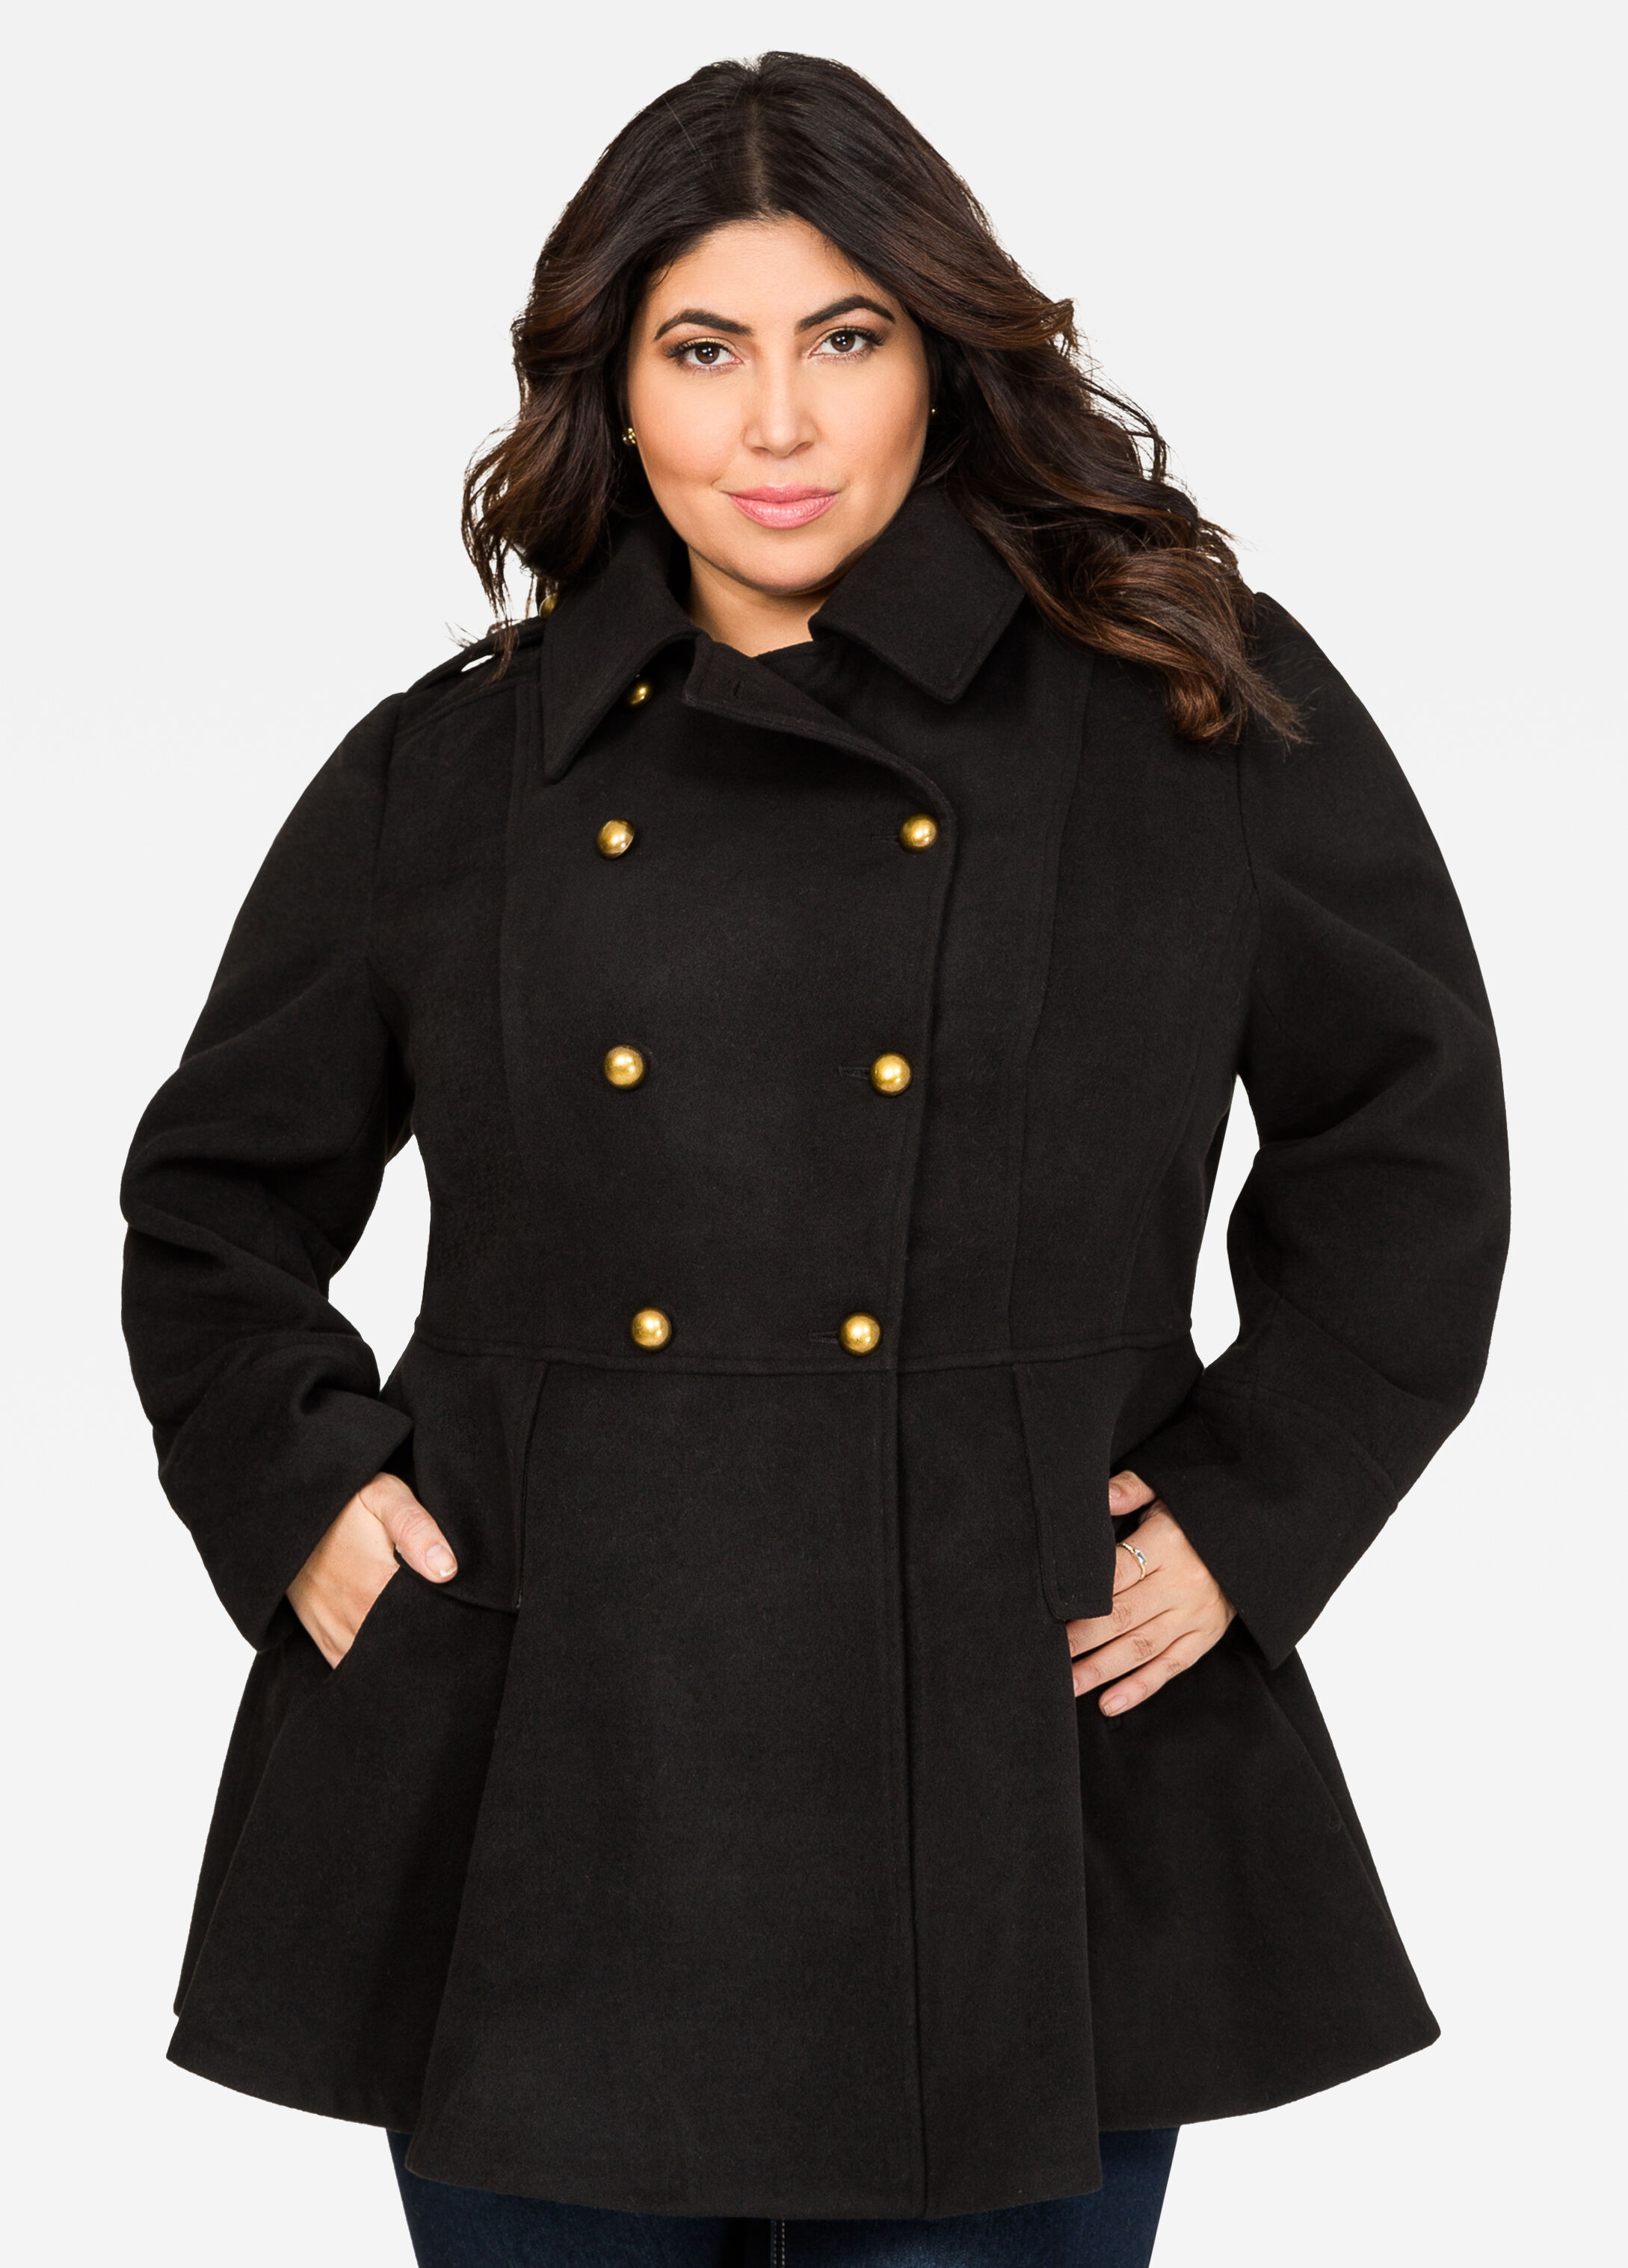 Enjoy a Winter Wonderland with Plus Size Coats for Women Feel comfortable, warm and free this winter with plus size coats for women from DICK'S Sporting Goods. Women's plus size winter coats are designed to fit well, especially over that holiday sweater/turtleneck combo that looked so great at .